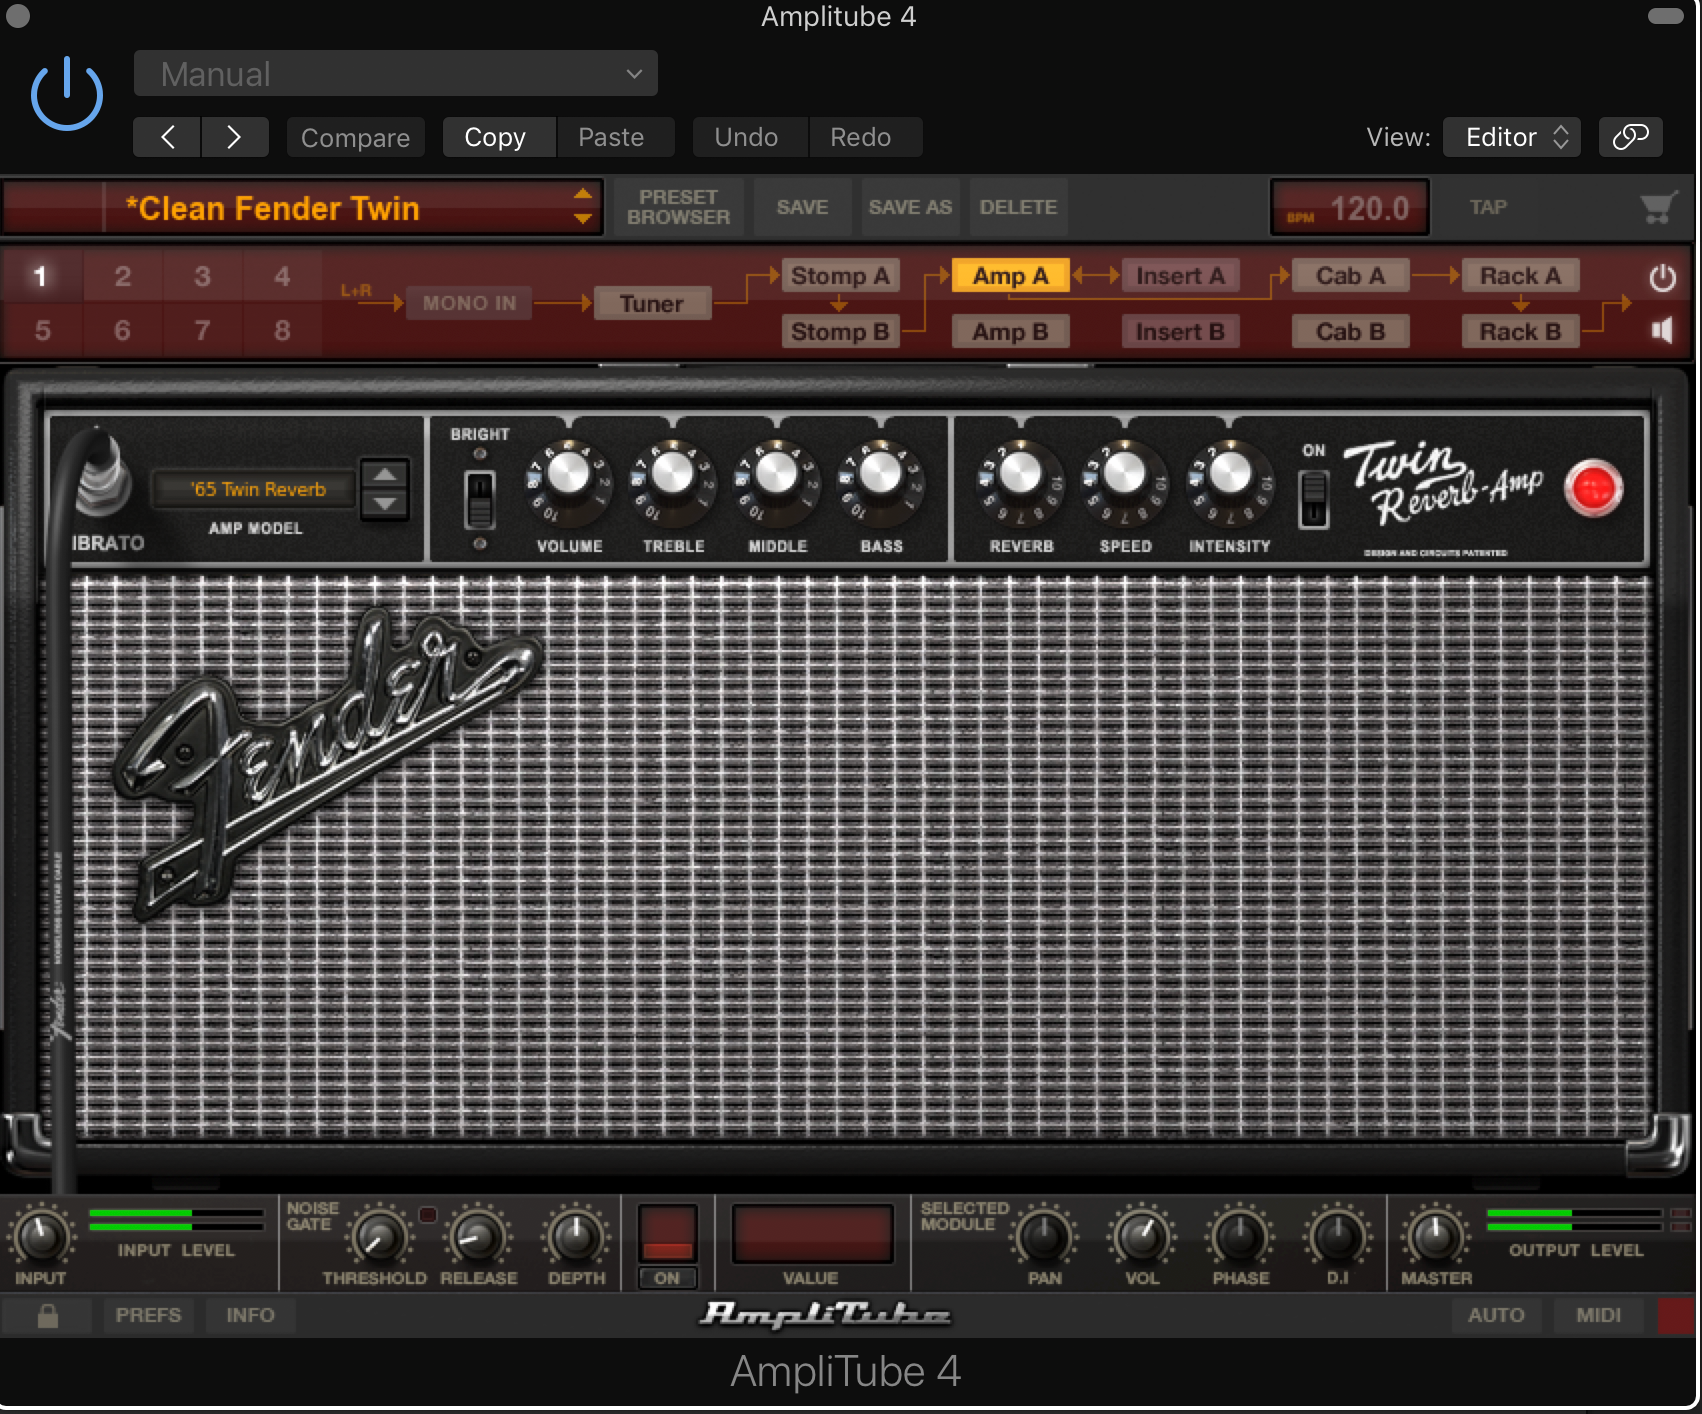 Fender_Clean_Amplitube_4.png